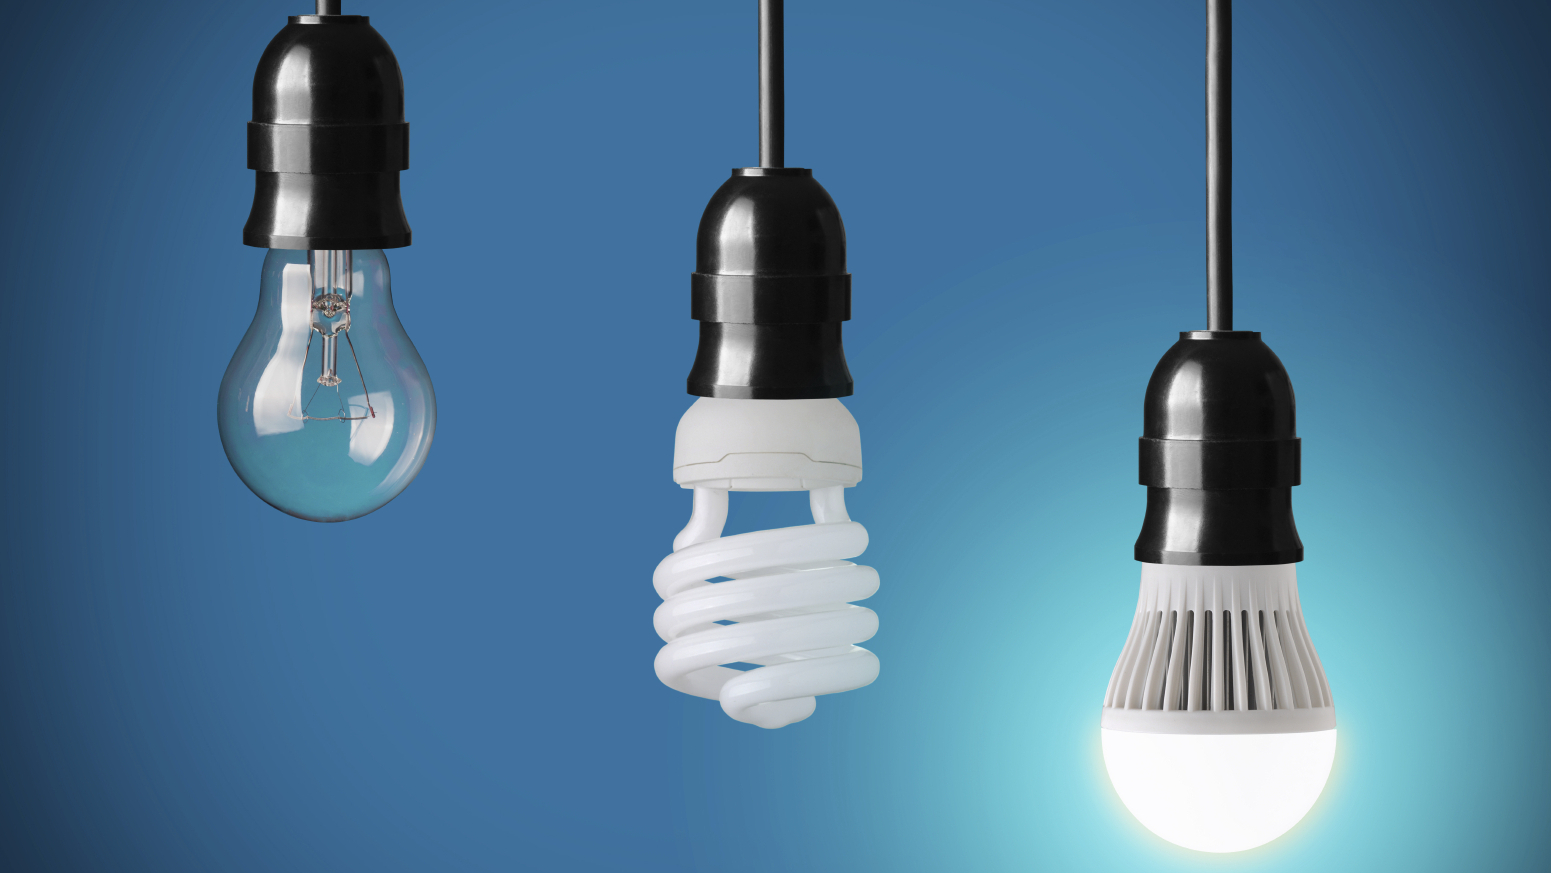 Lightbulb Lights Watts The Deal Demystifying Leds Cfls Halogens And More Npr